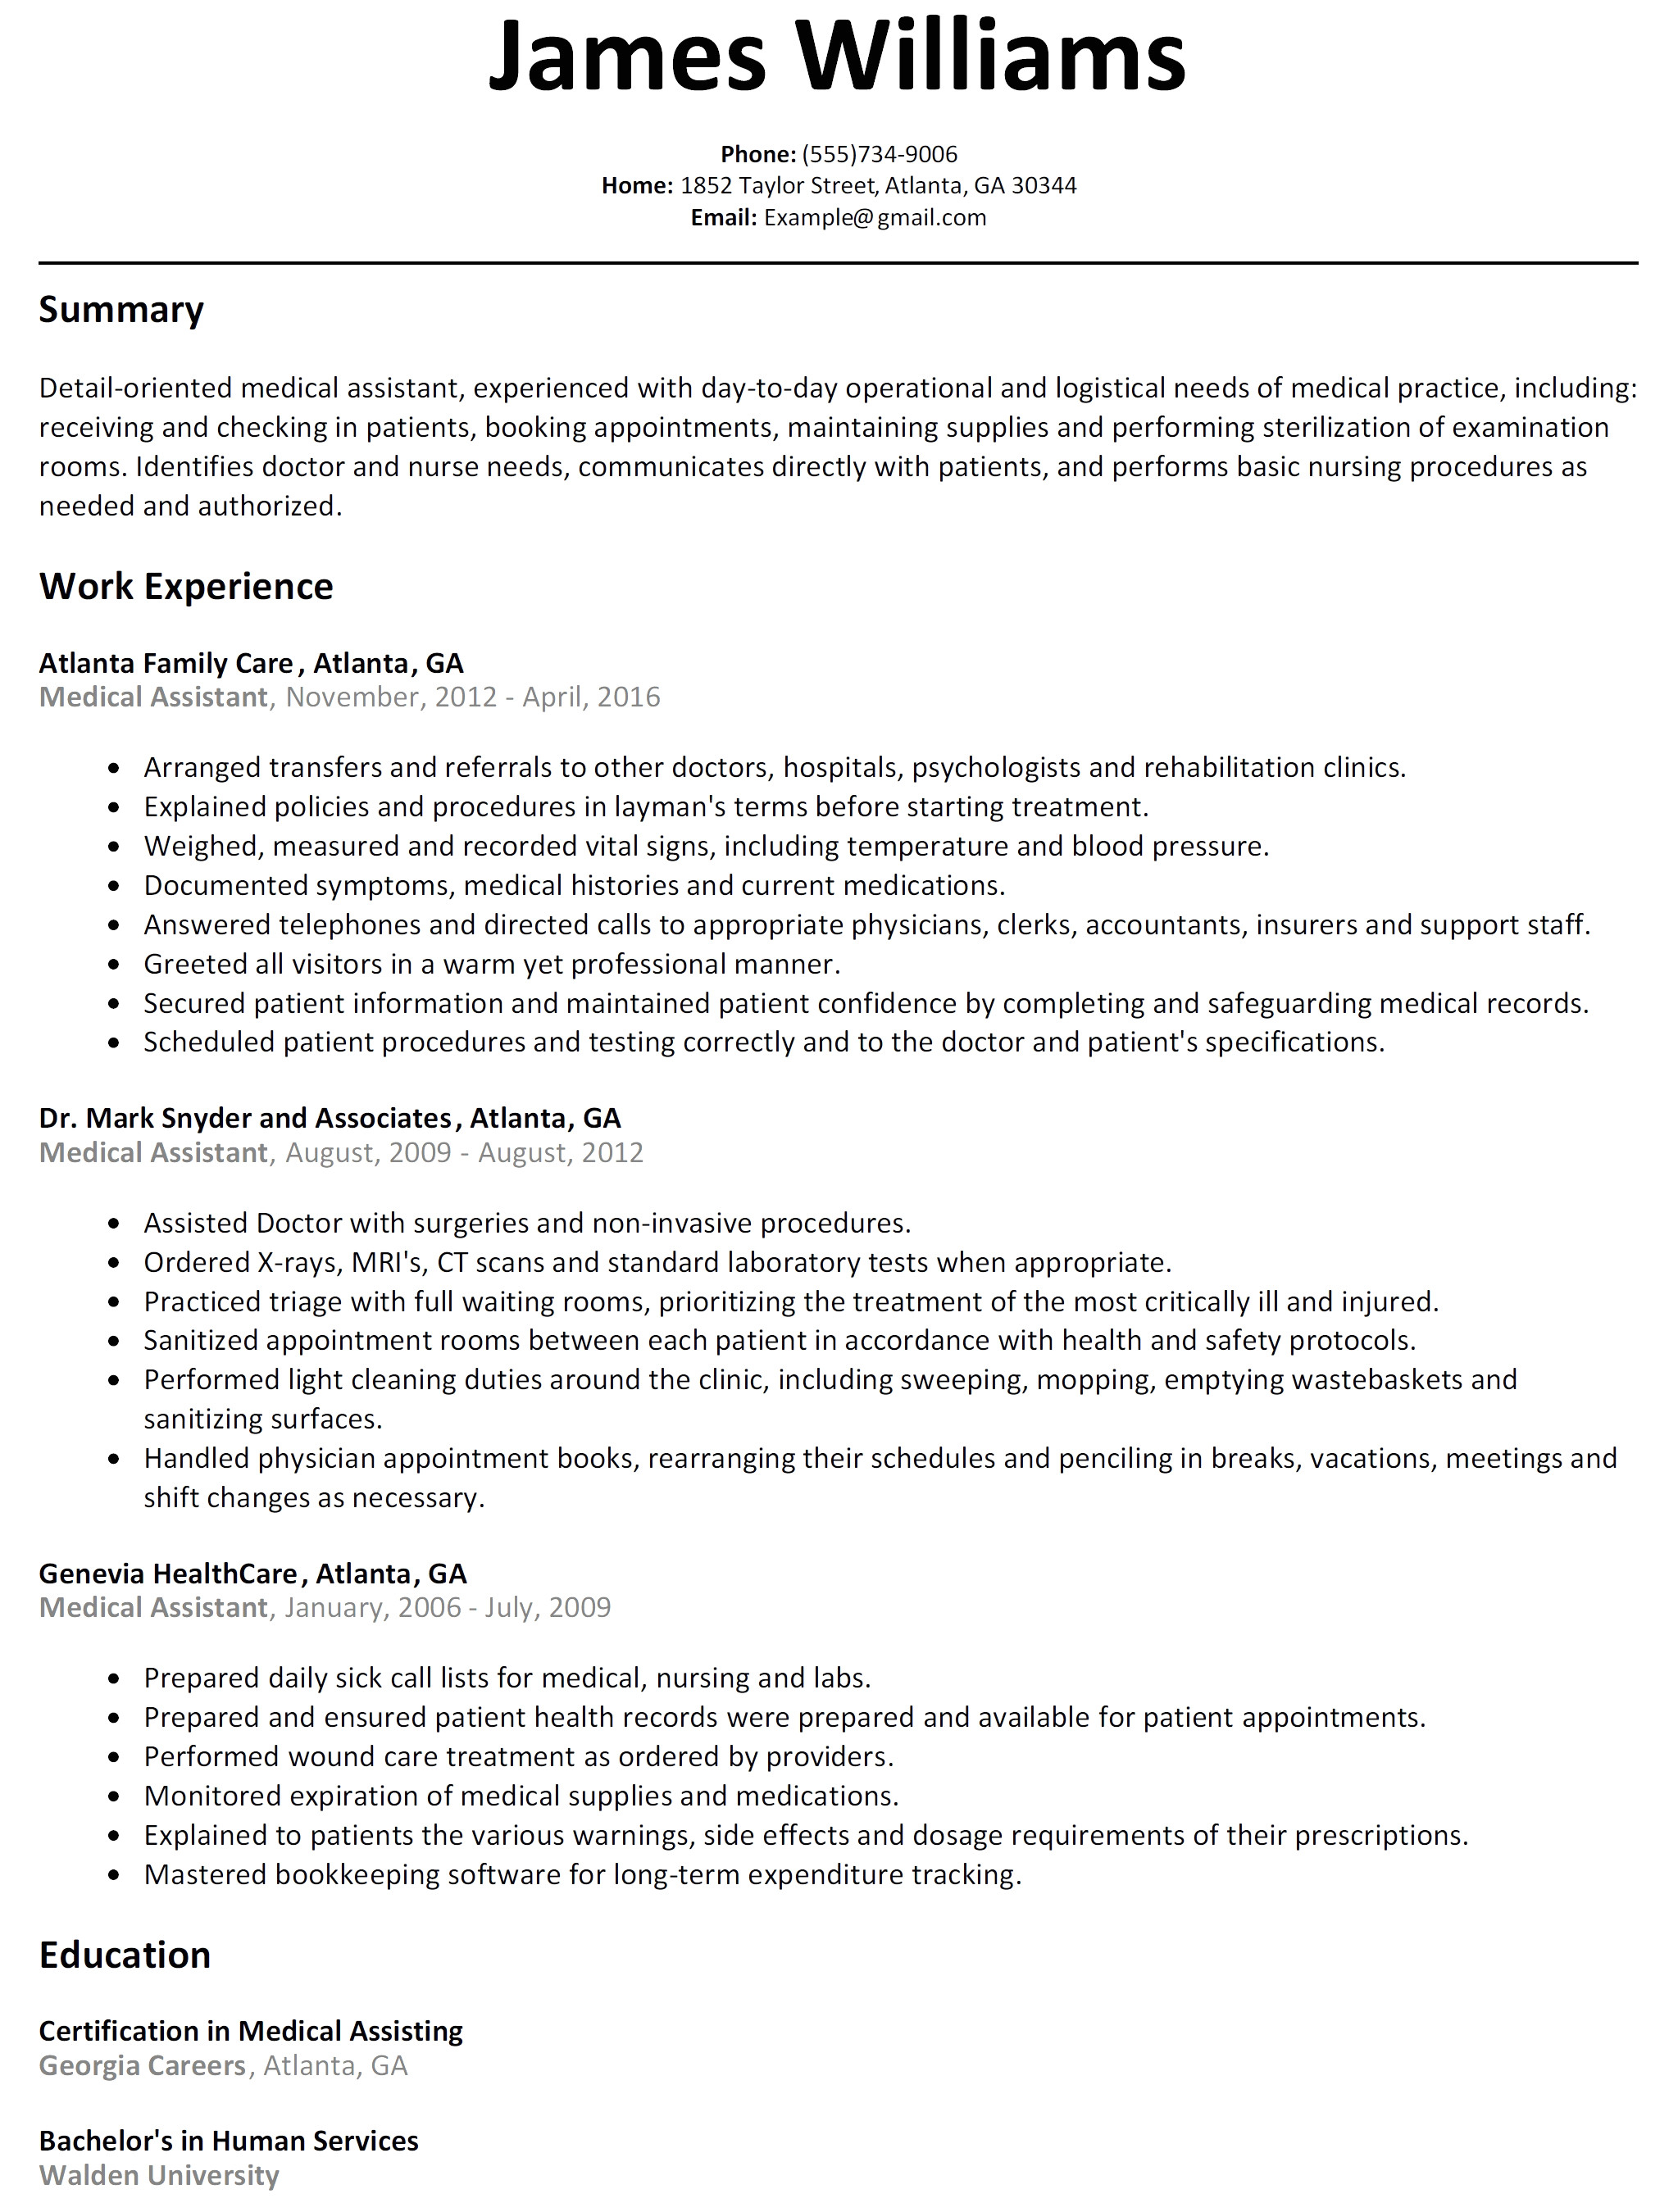 Resume Builders for Veterans - 39 Design Linkedin Resume Builder